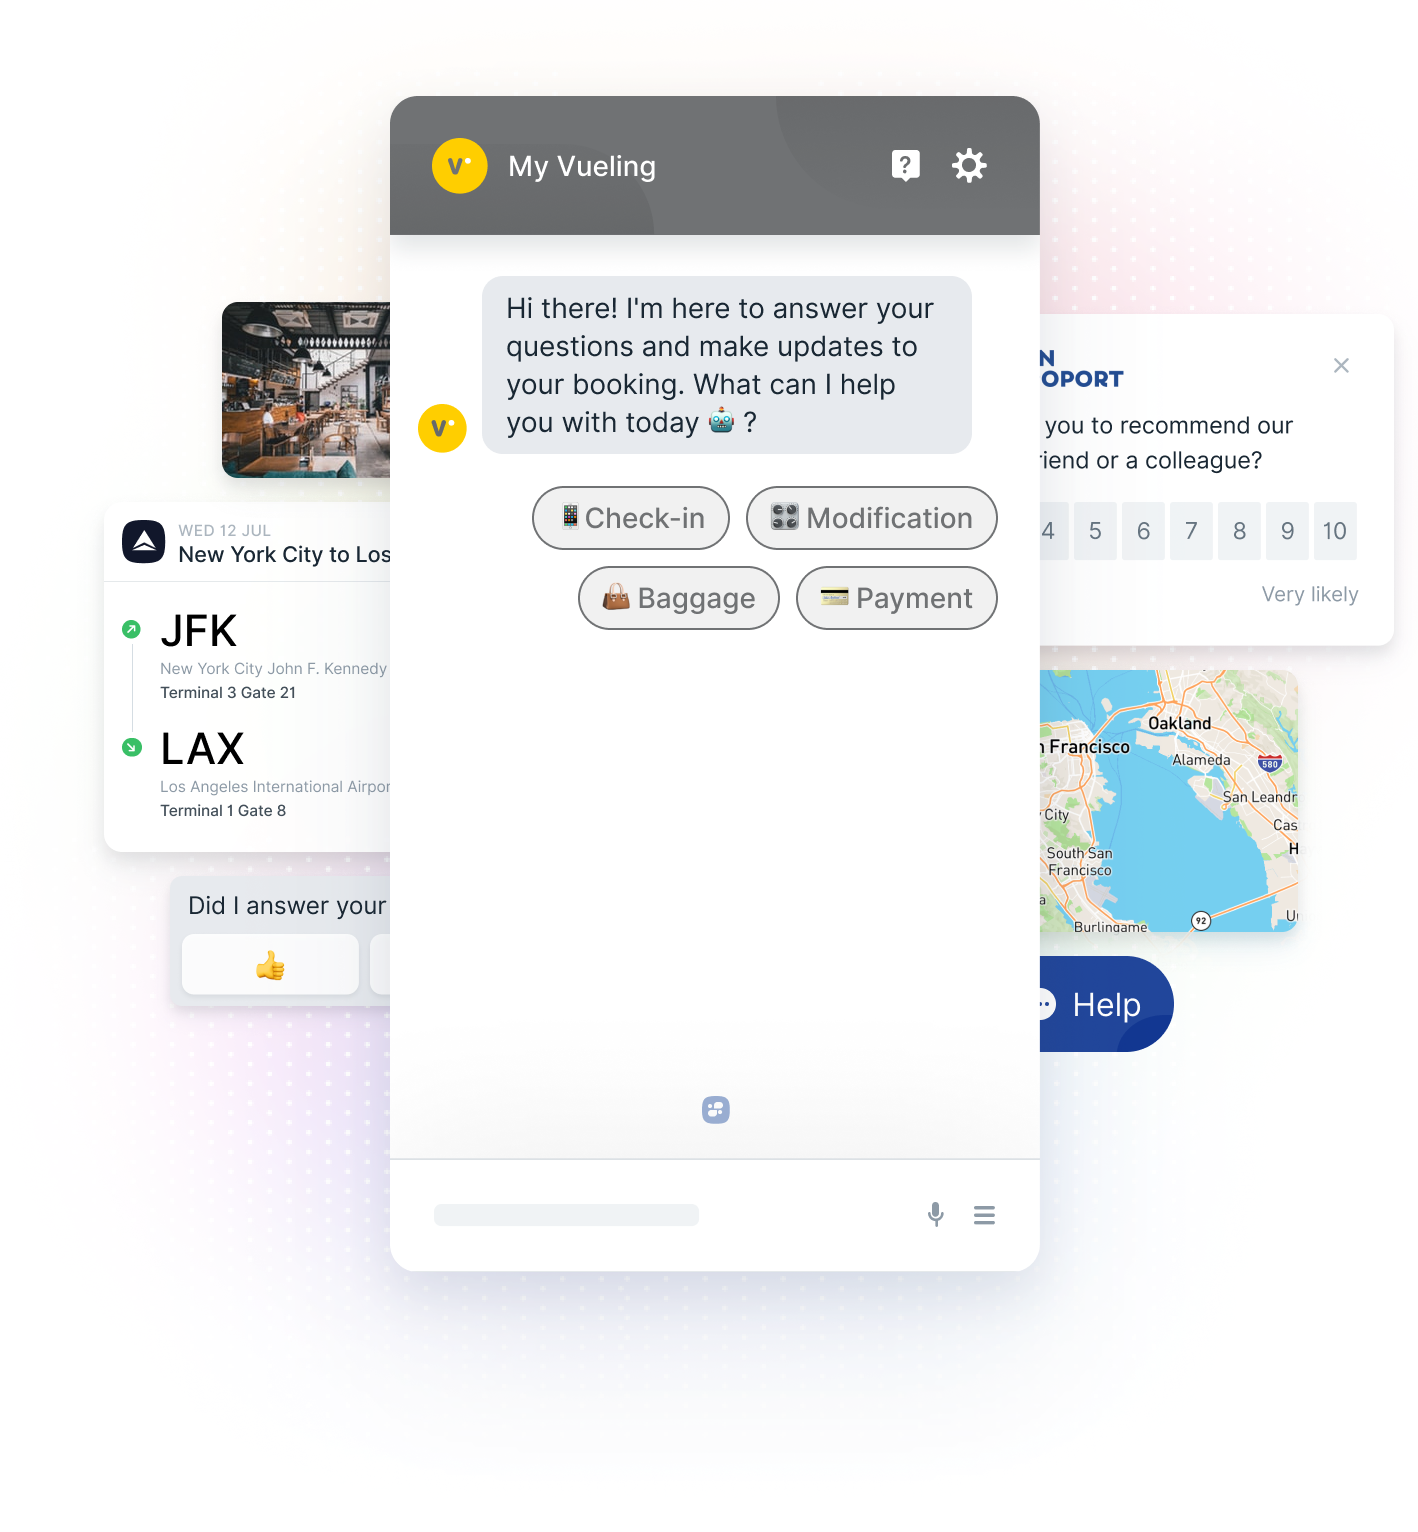 Vueling Chatbot, Flight Itinerary, Map. Feedback Score, and Hotel Lobby